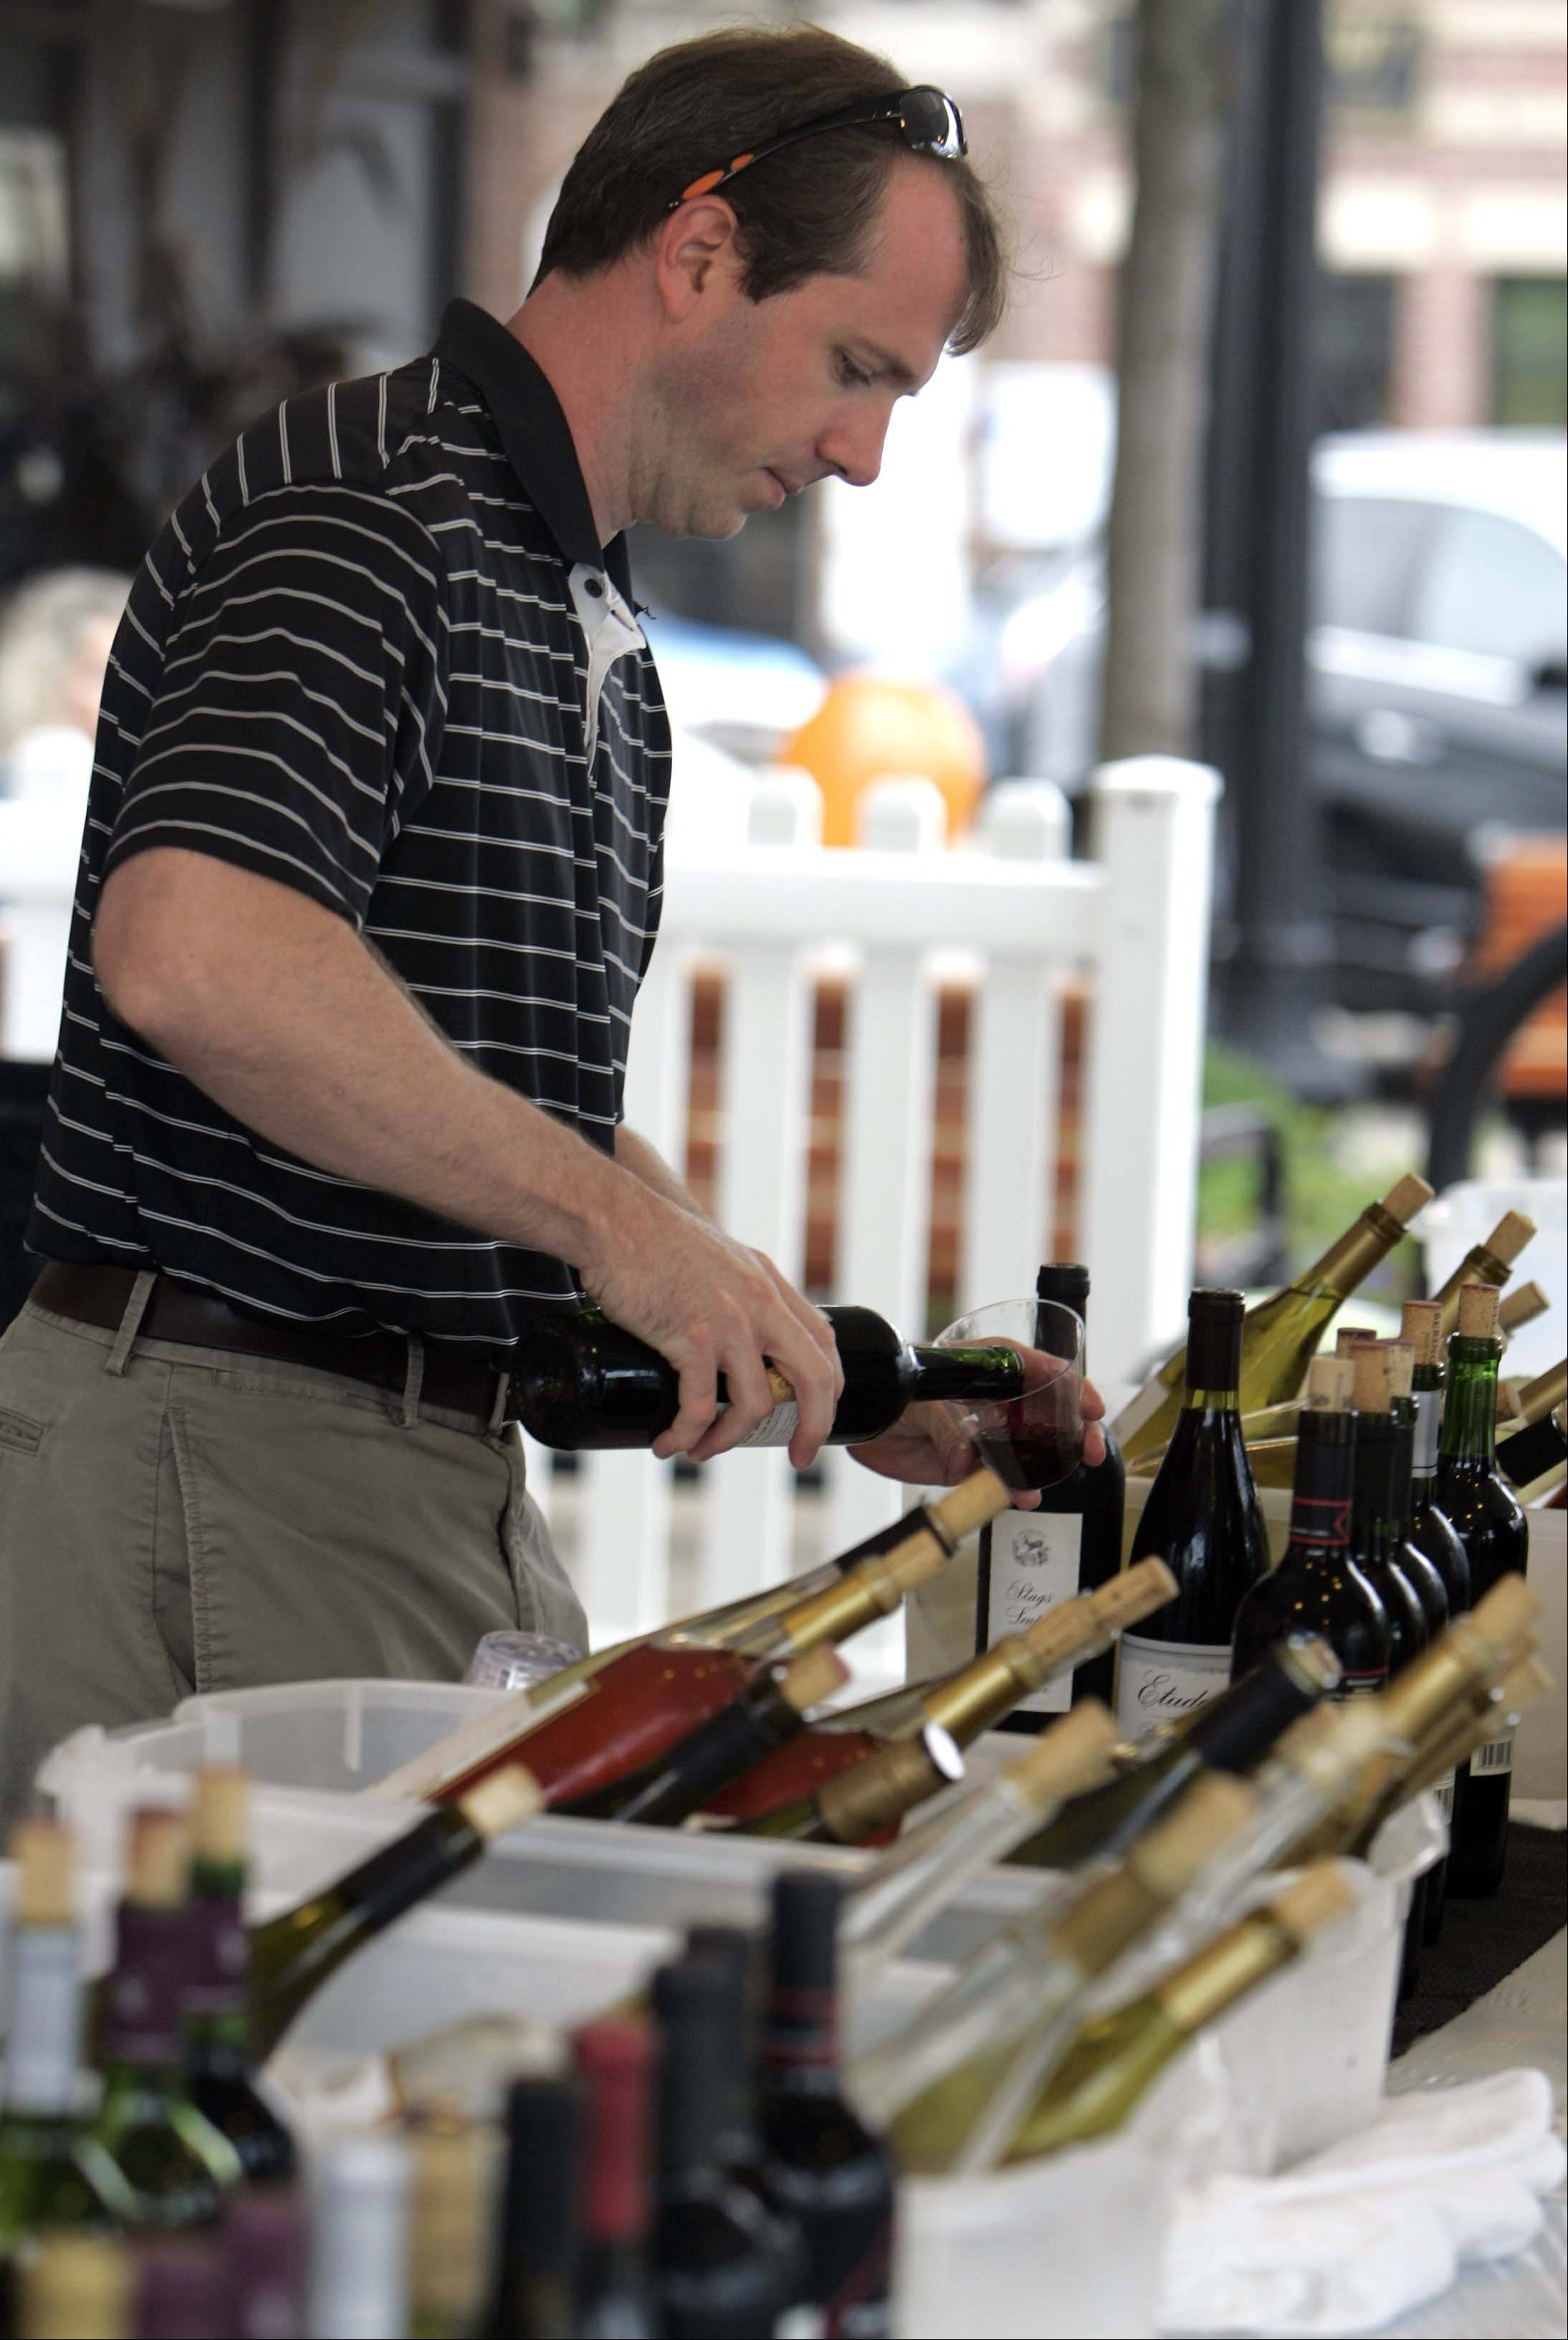 Emmett Malloy pours a glass of wine for a customer during last year's Festival of the Vine in Geneva. This year's fest starts Friday.